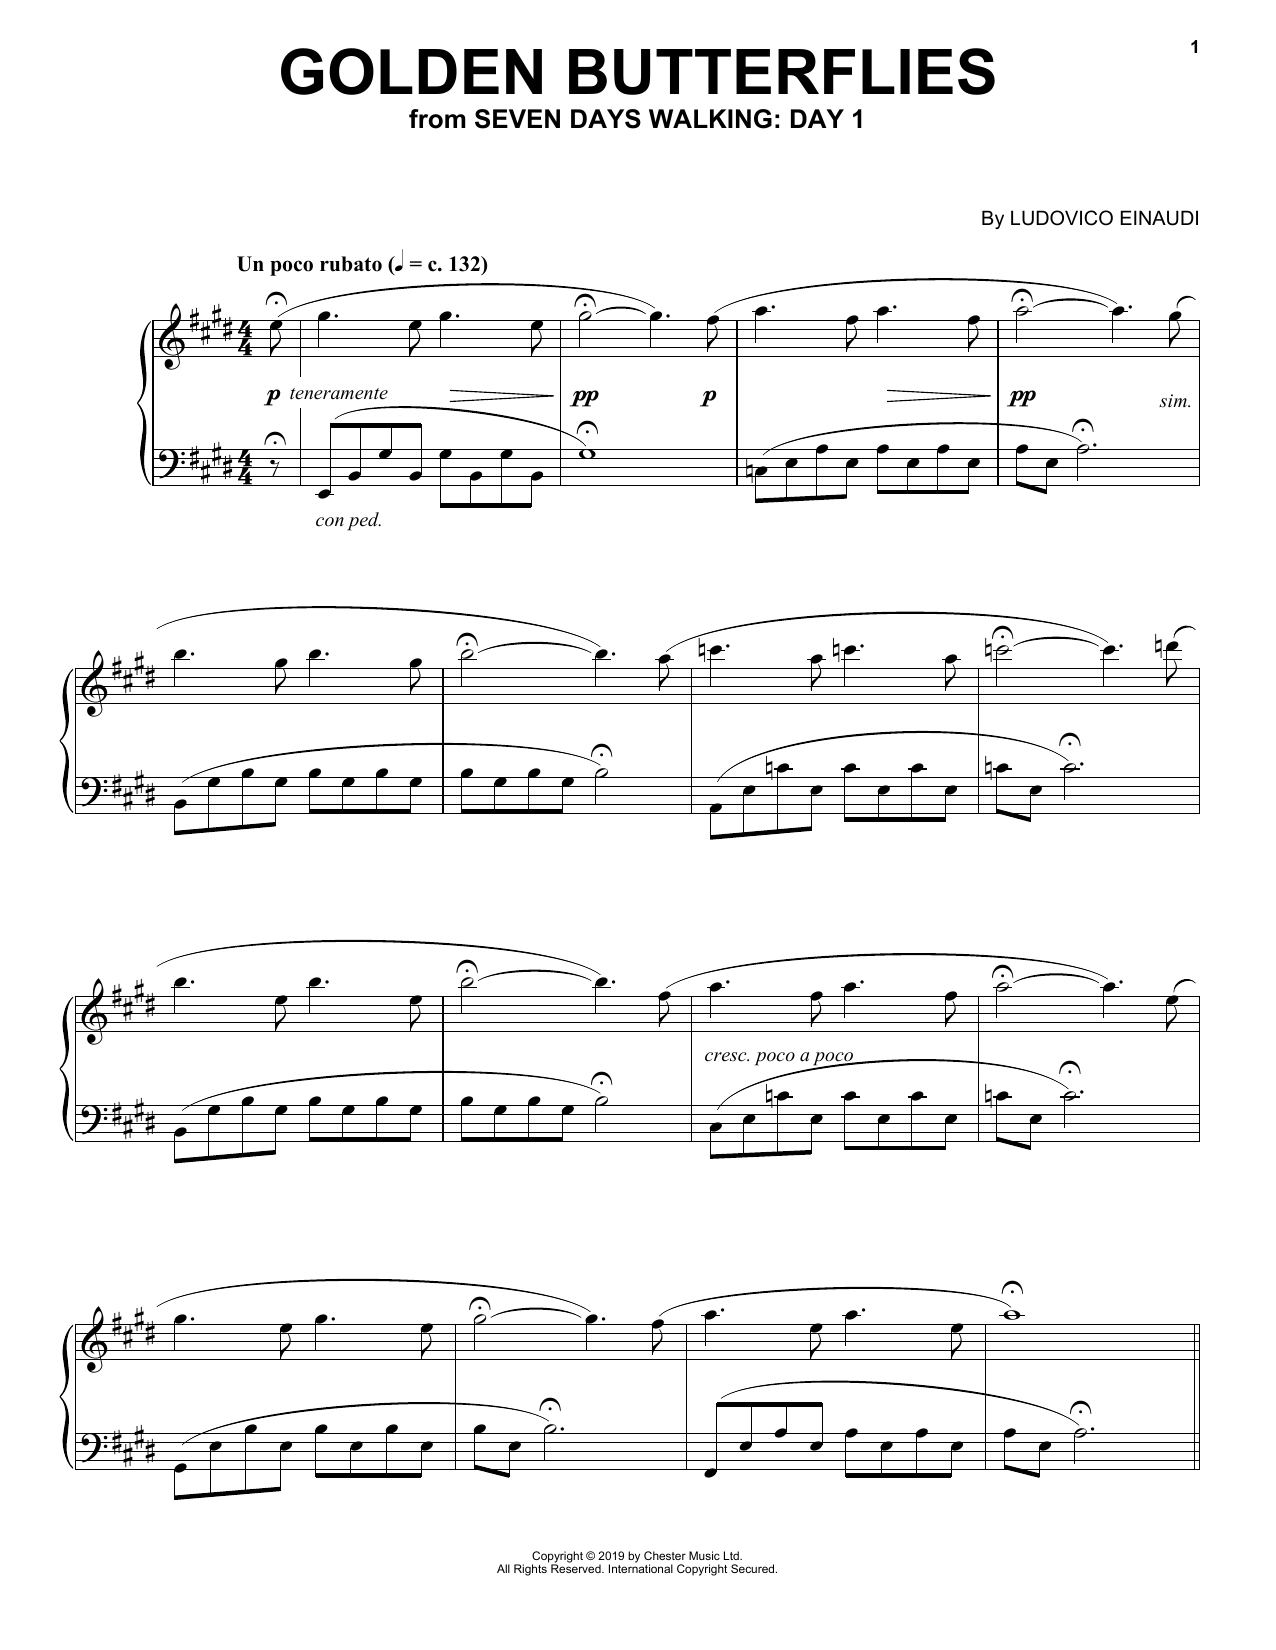 Golden Butterflies (from Seven Days Walking: Day 1) (Piano Solo)